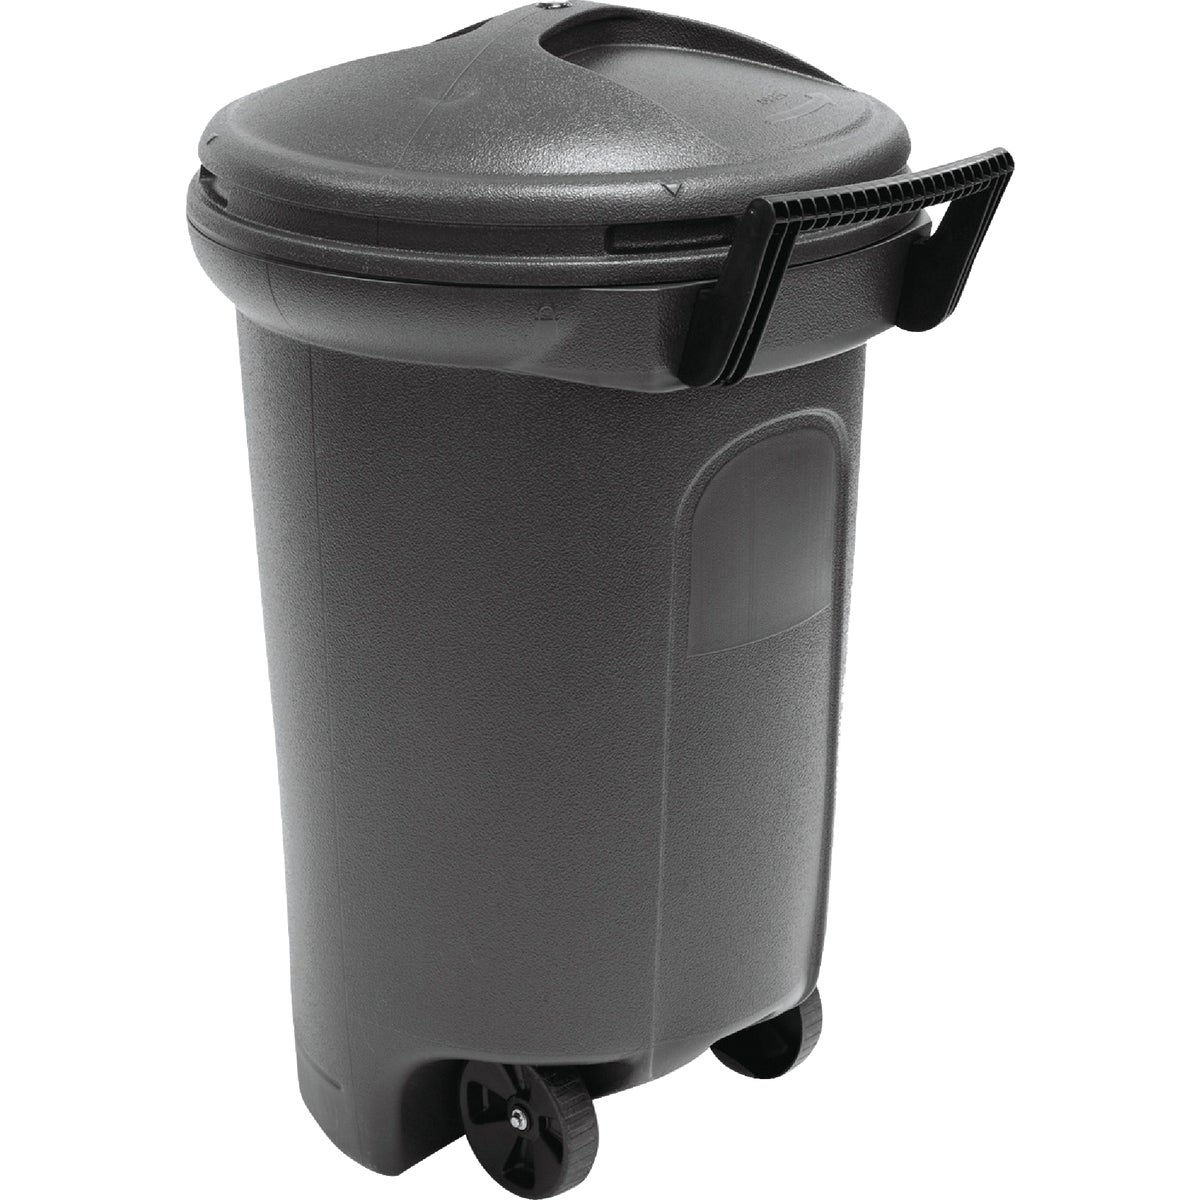 32GAL CRITTR-PROOF TRASH - TB0026 by United Solutions